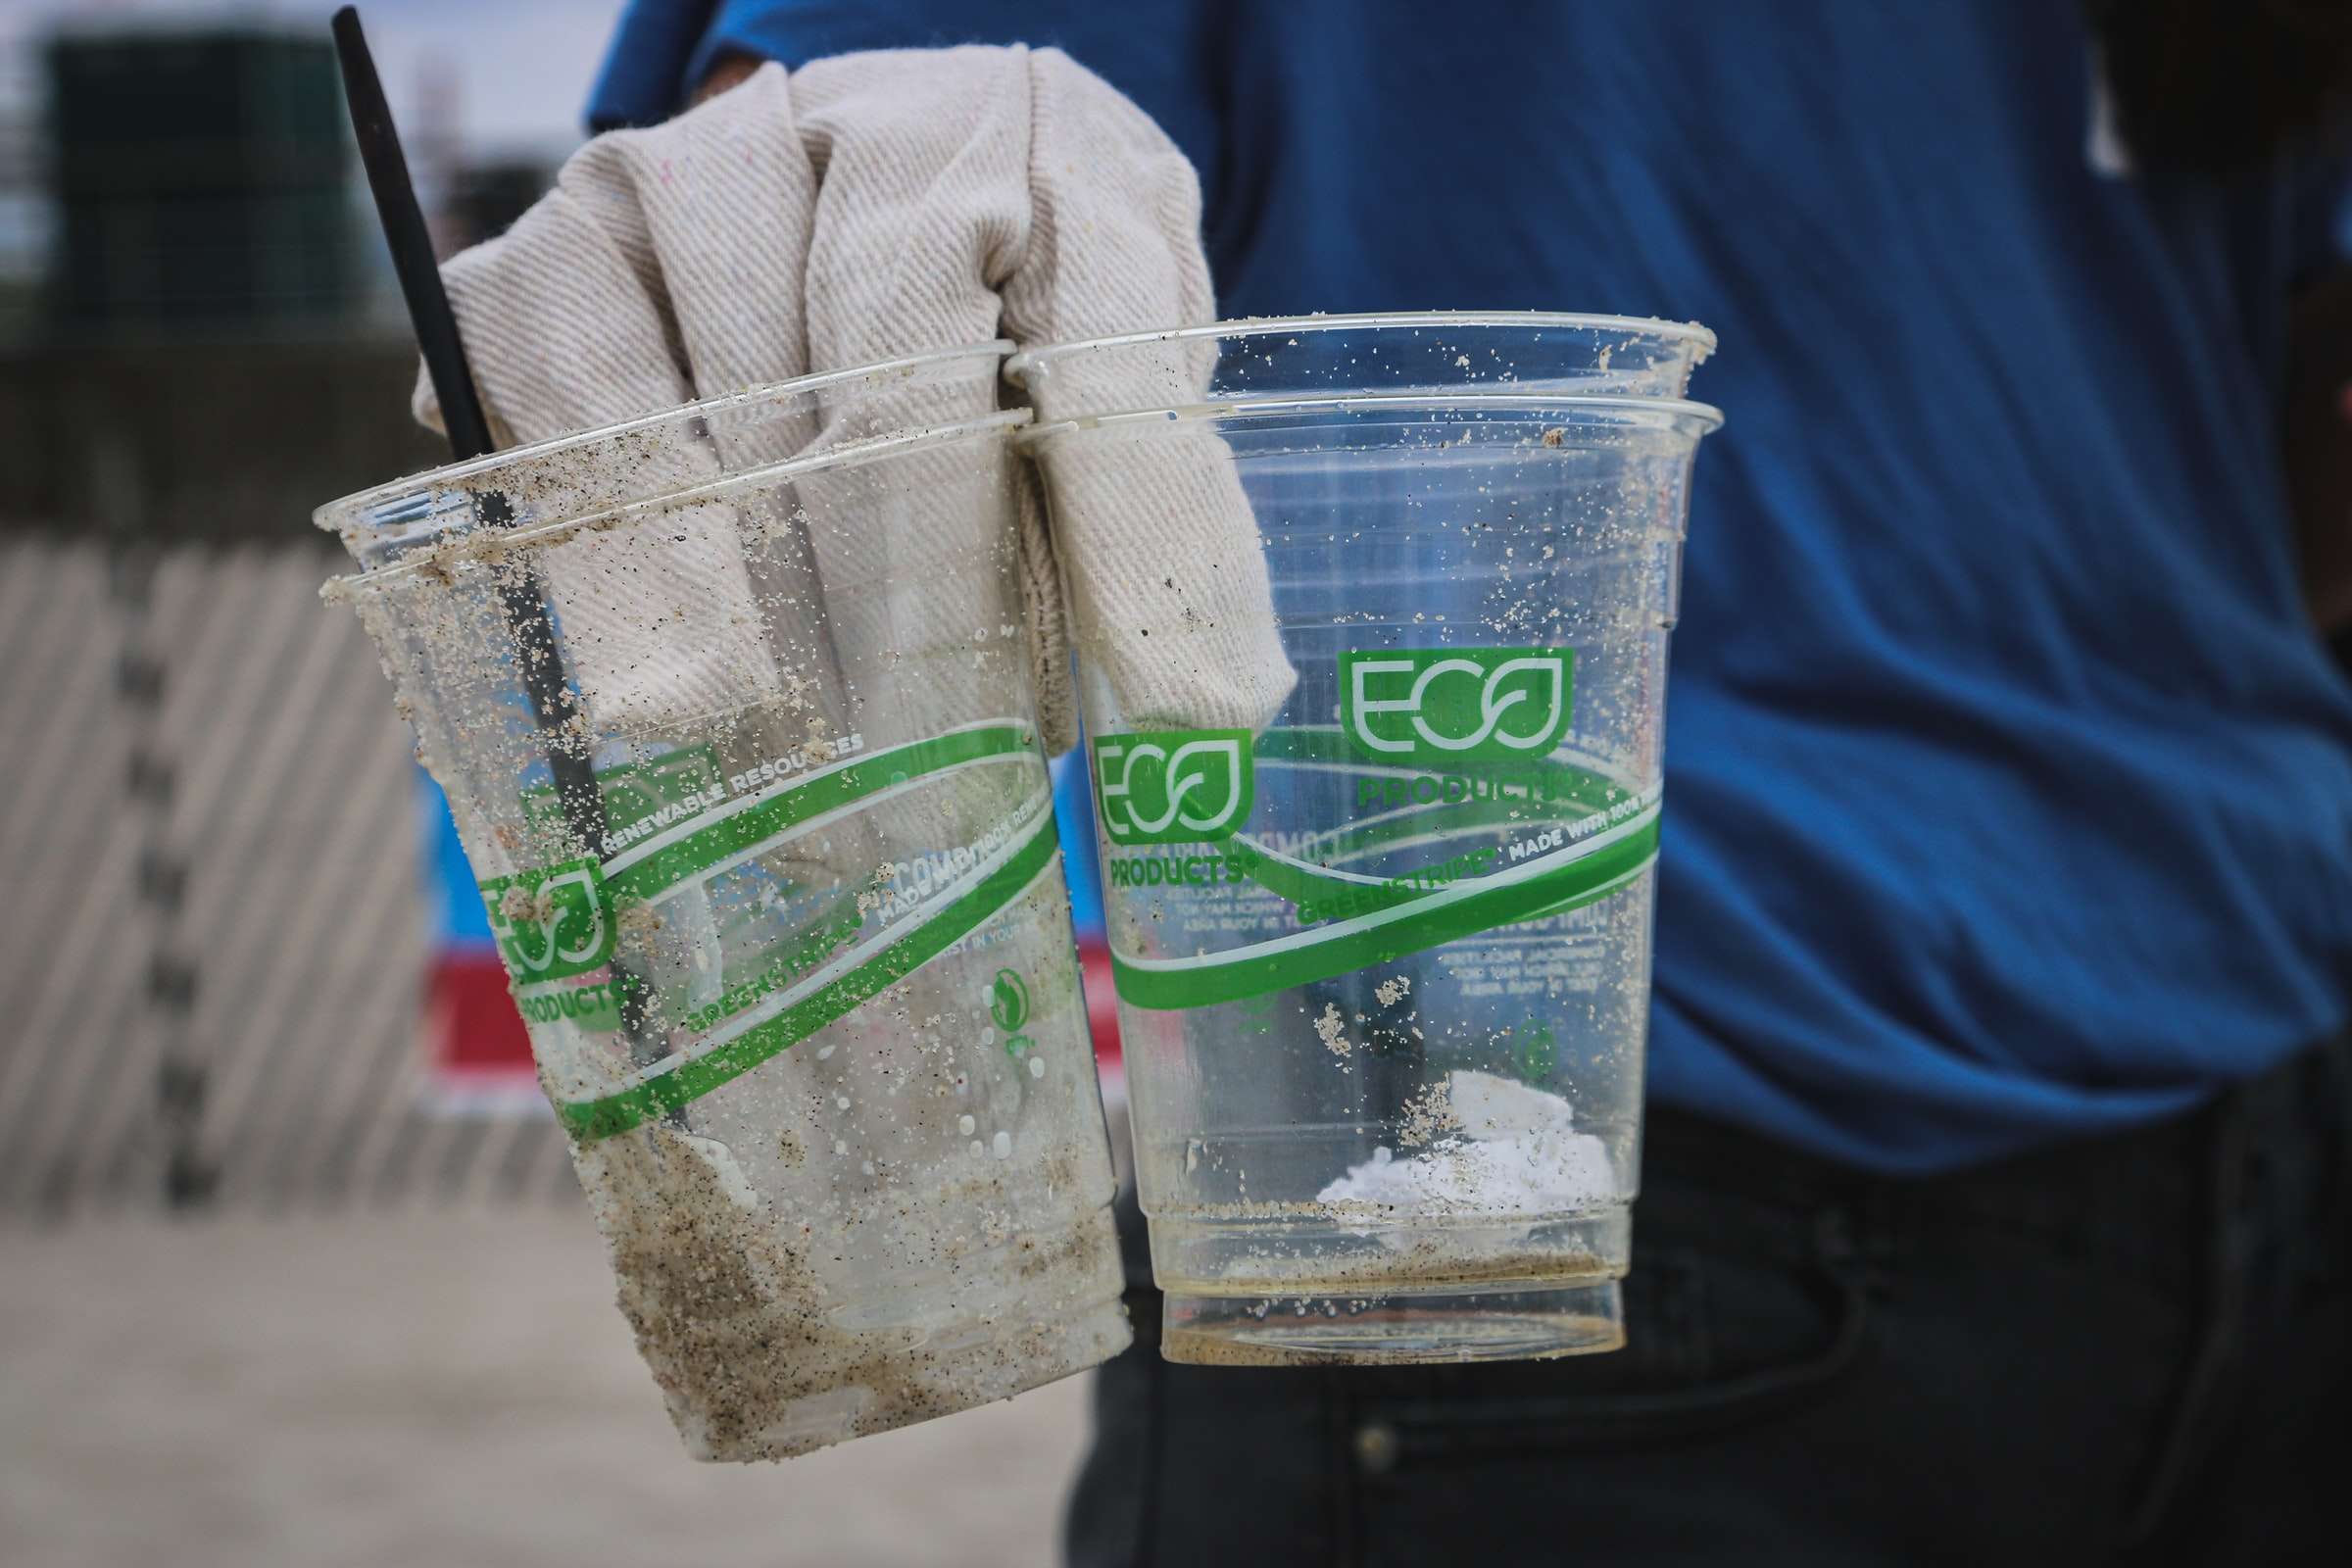 compostable cups still litter, held in gloved hand